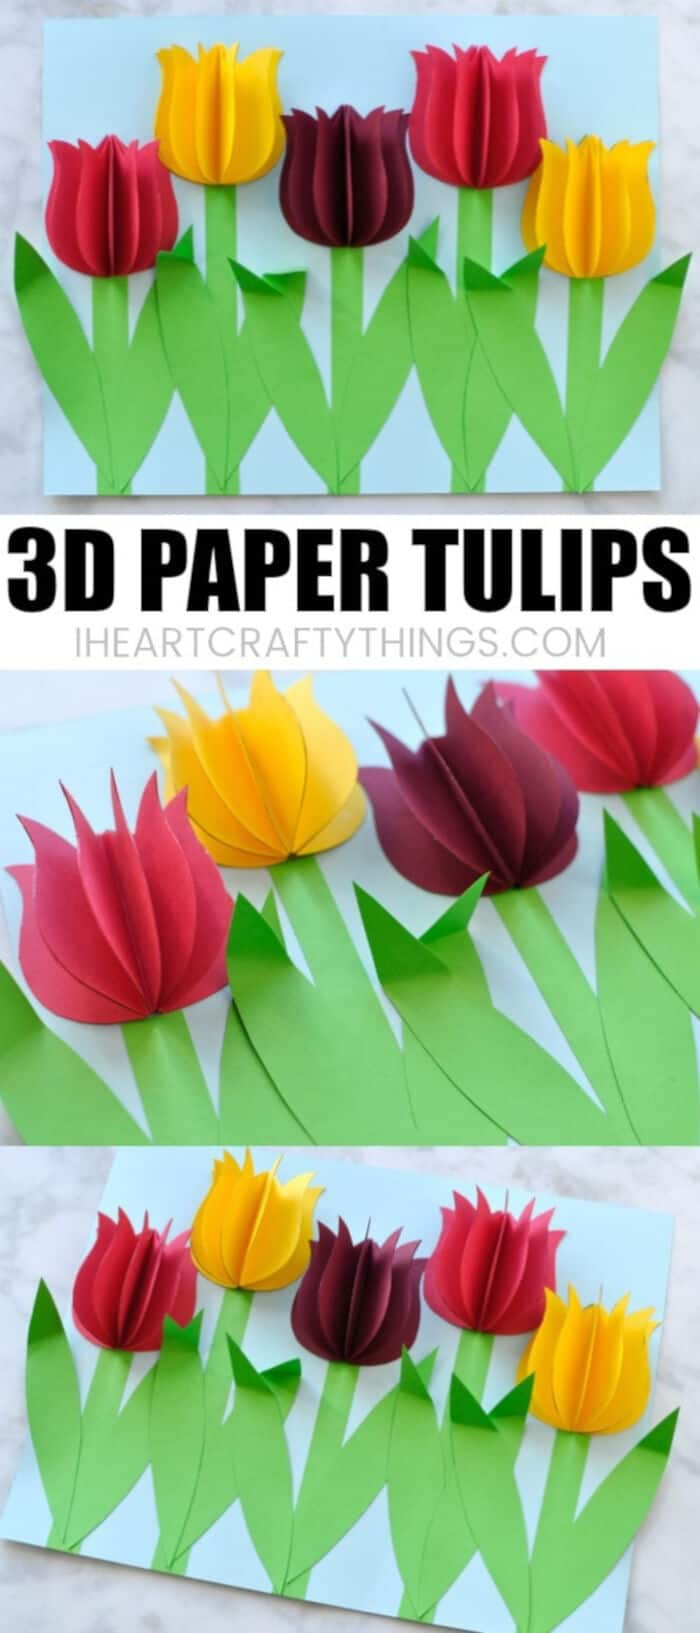 3D Paper Tulips by I Heart Crafty Things